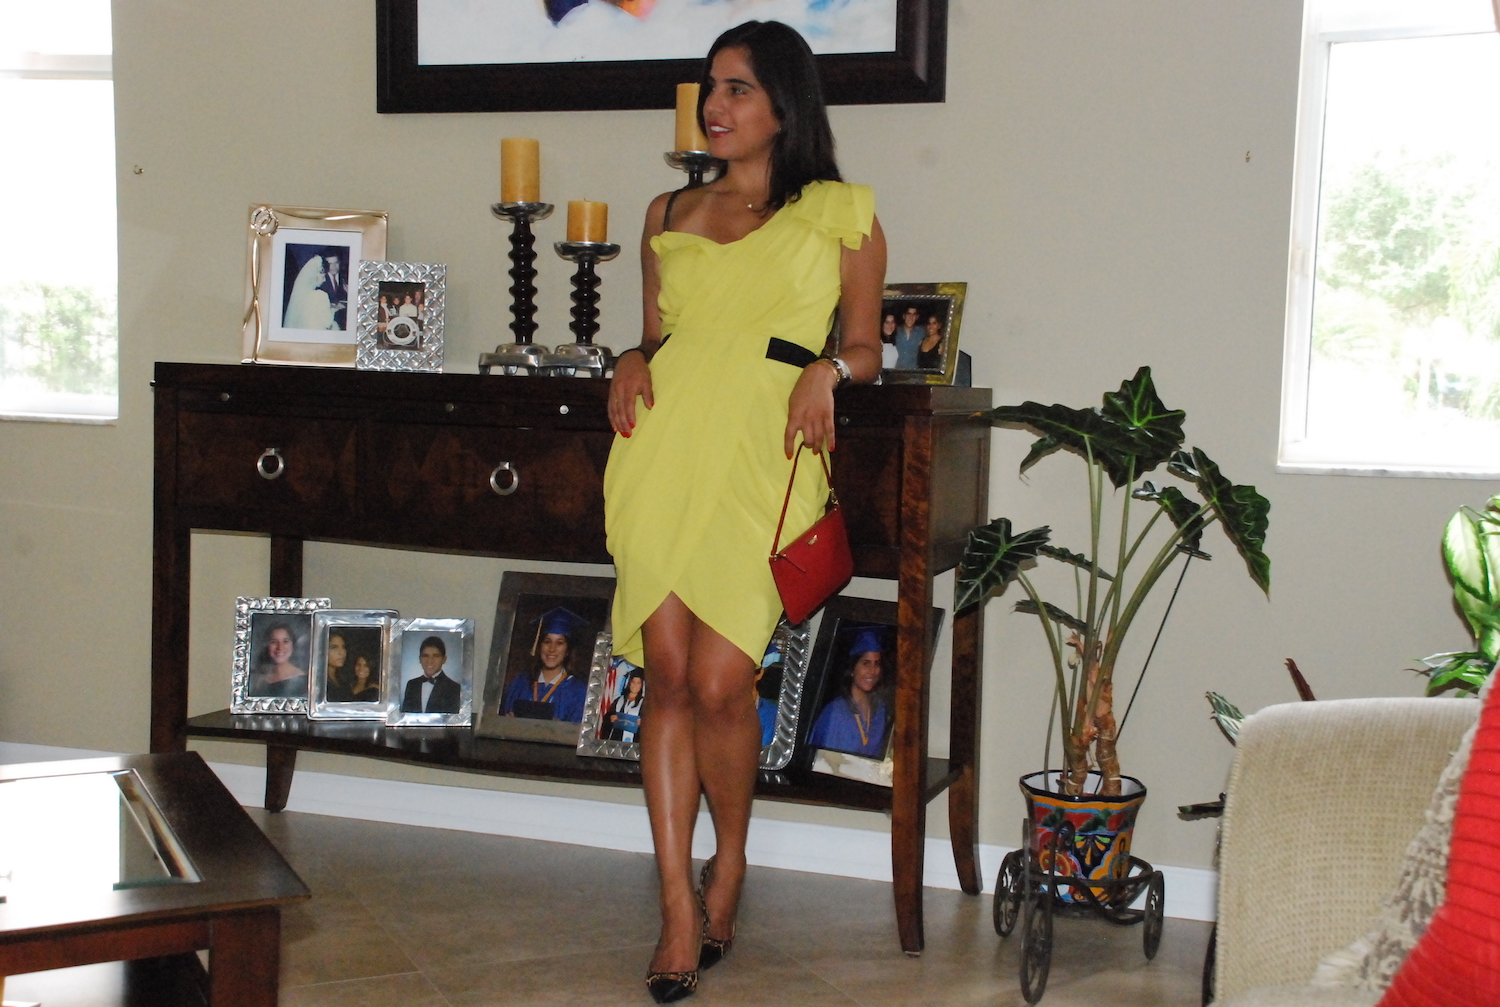 A Hint of Life shares her graduation outfit in Fort Lauderdale, FL